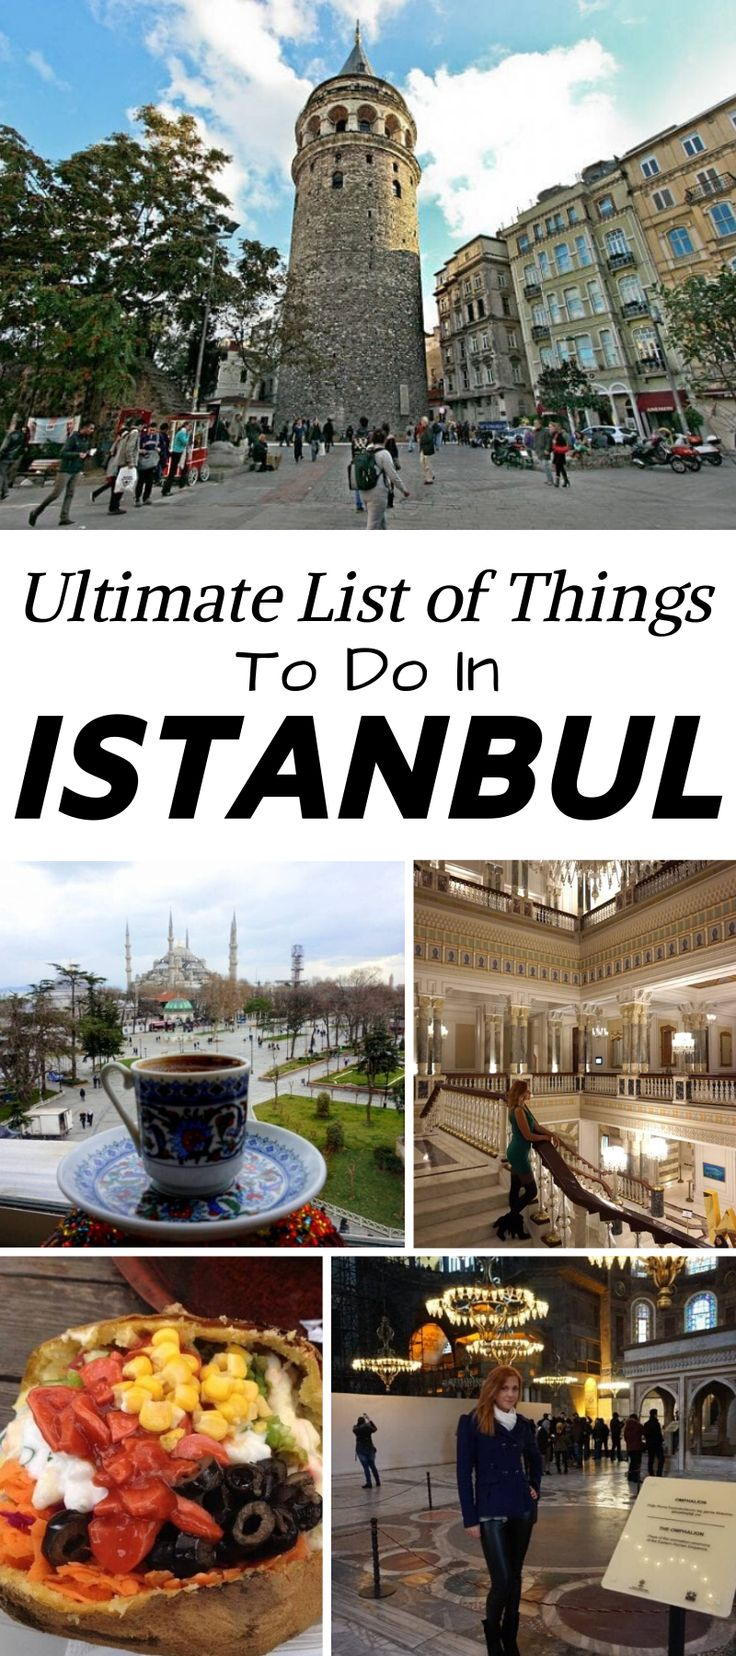 Ultimate List of Things To Do in Istanbul